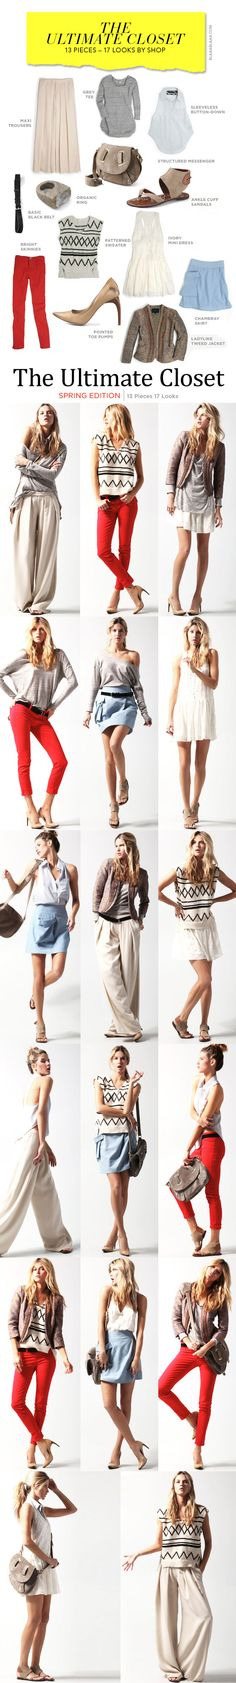 Great little guide for simple styling!    The Ultimate Closet: 13 Pieces – 17 Looks von shopbop